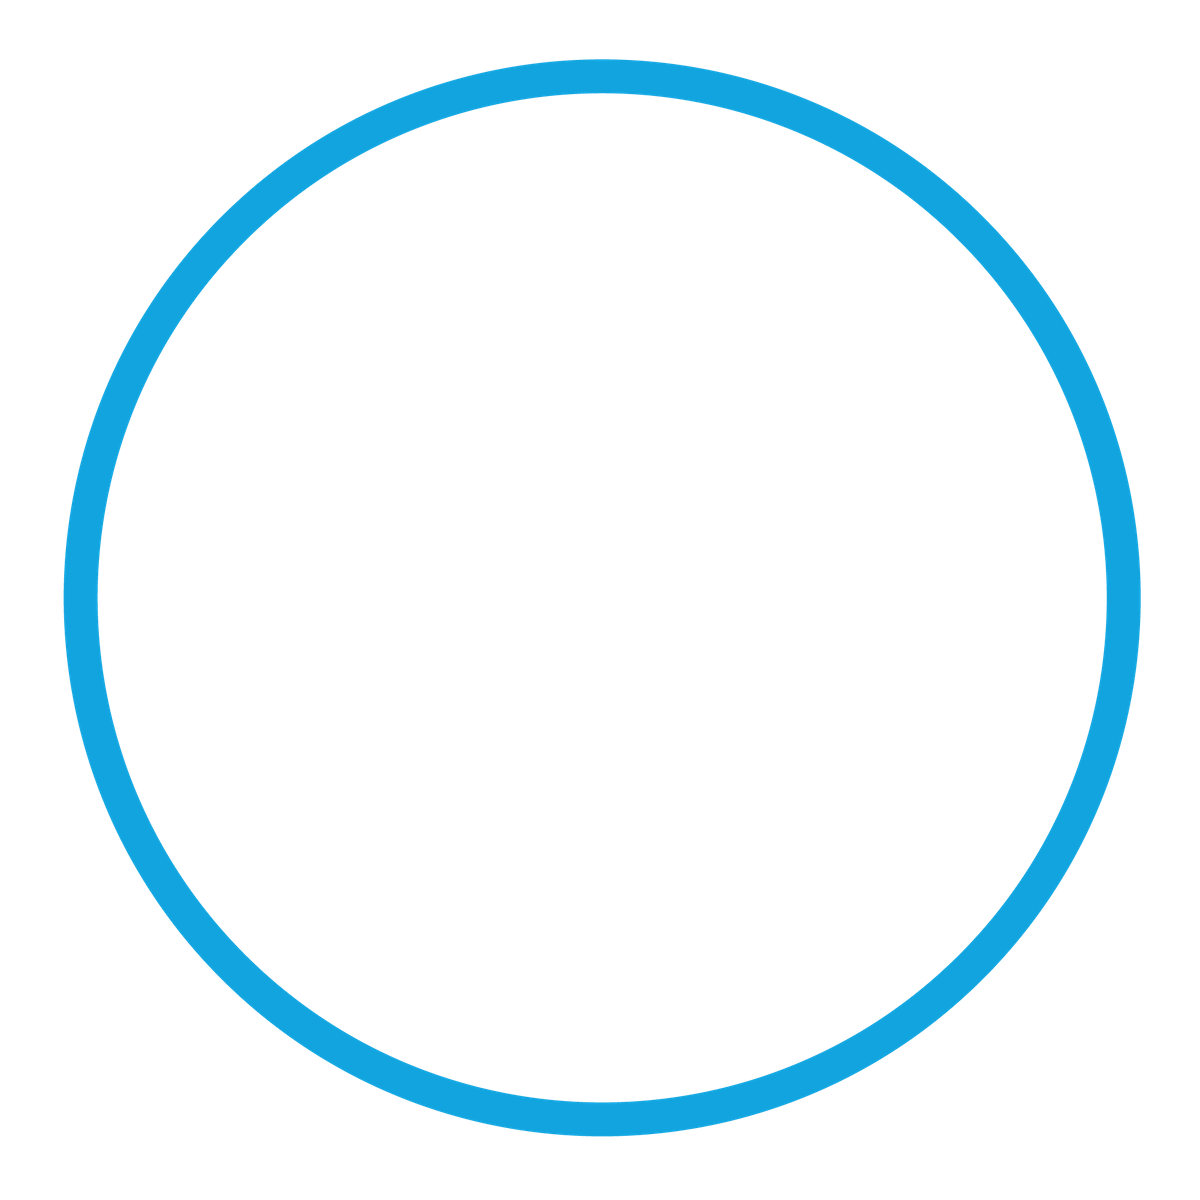 Playground Marking Spin Outline Active Spot